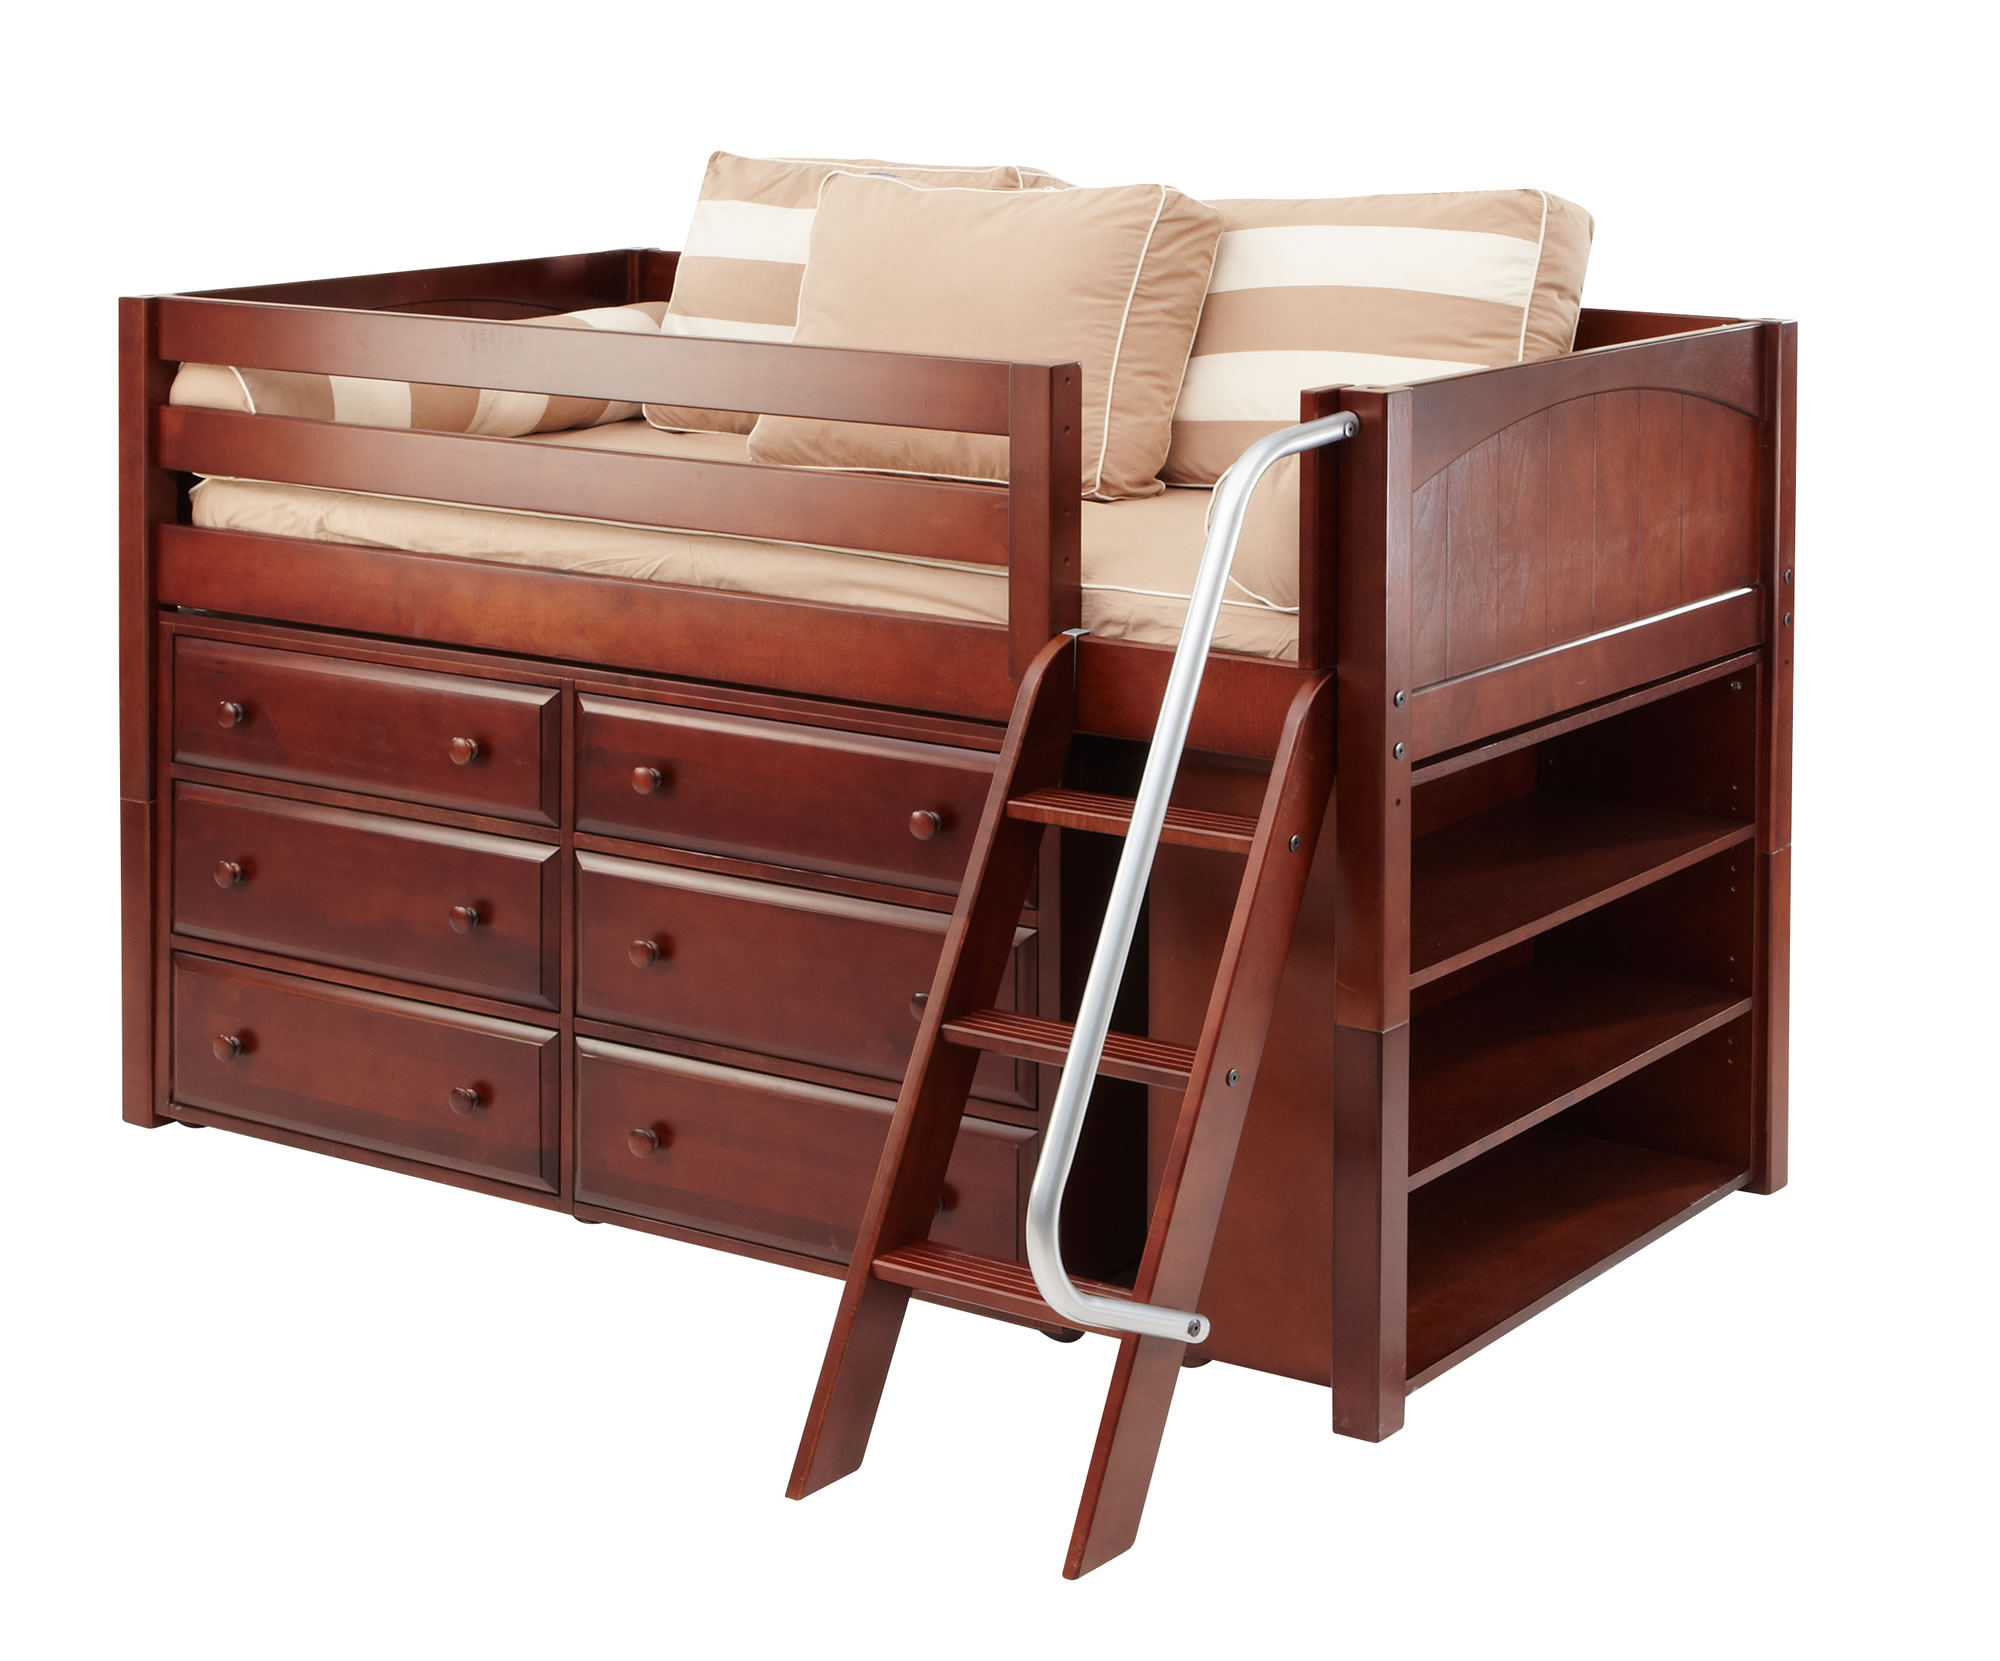 Furniture > Bedroom Furniture > Dresser > Loft Bed Desk Dresser